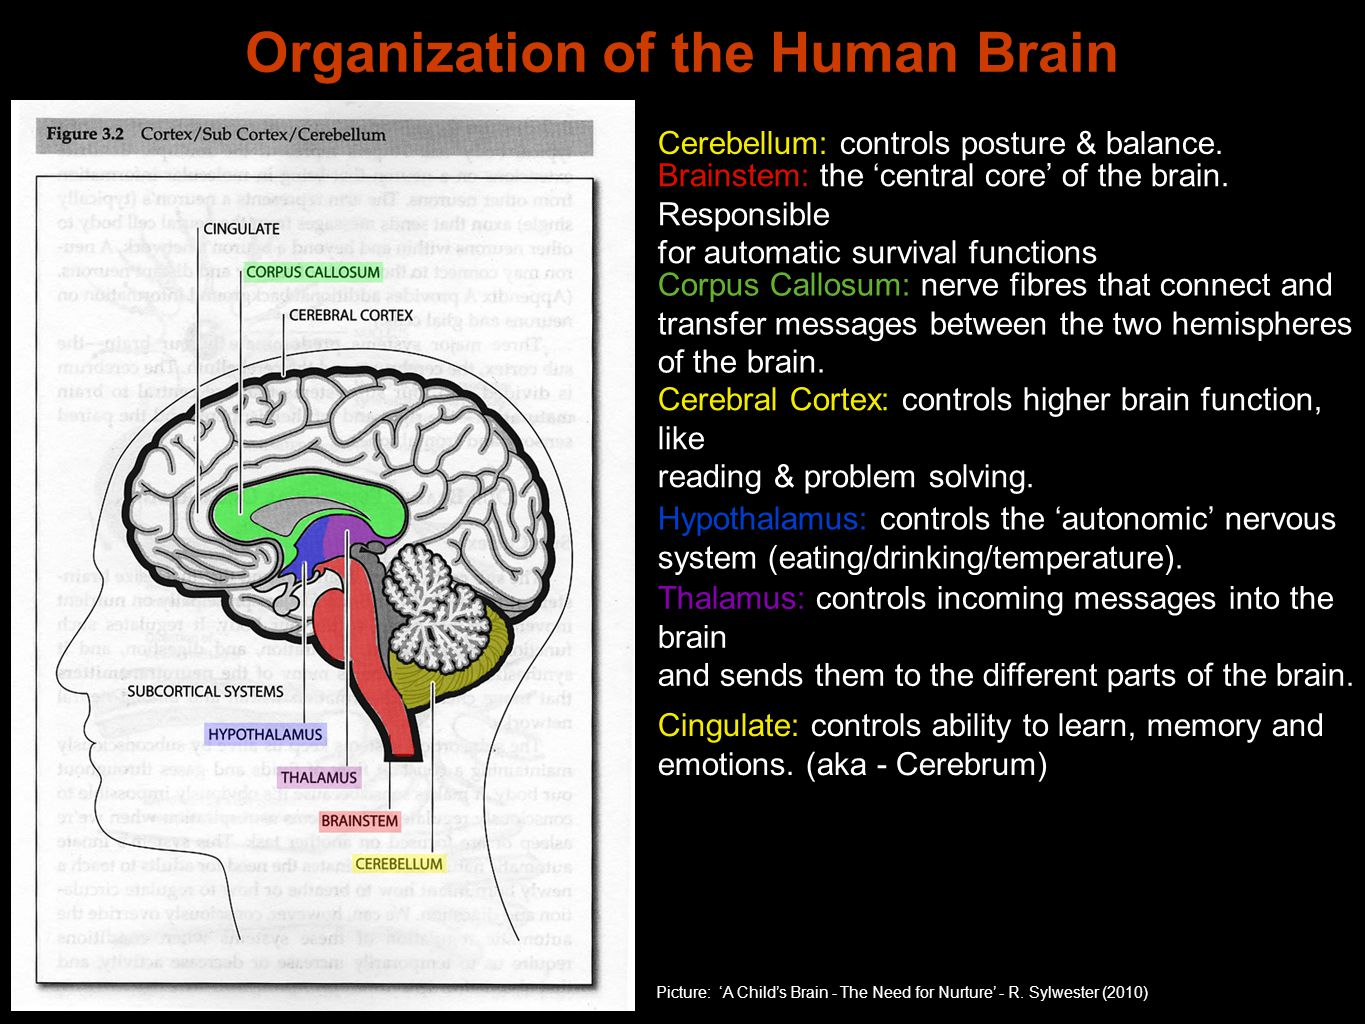 Organization of the Human Brain Picture: 'A Child's Brain - The Need for Nurture' - R.